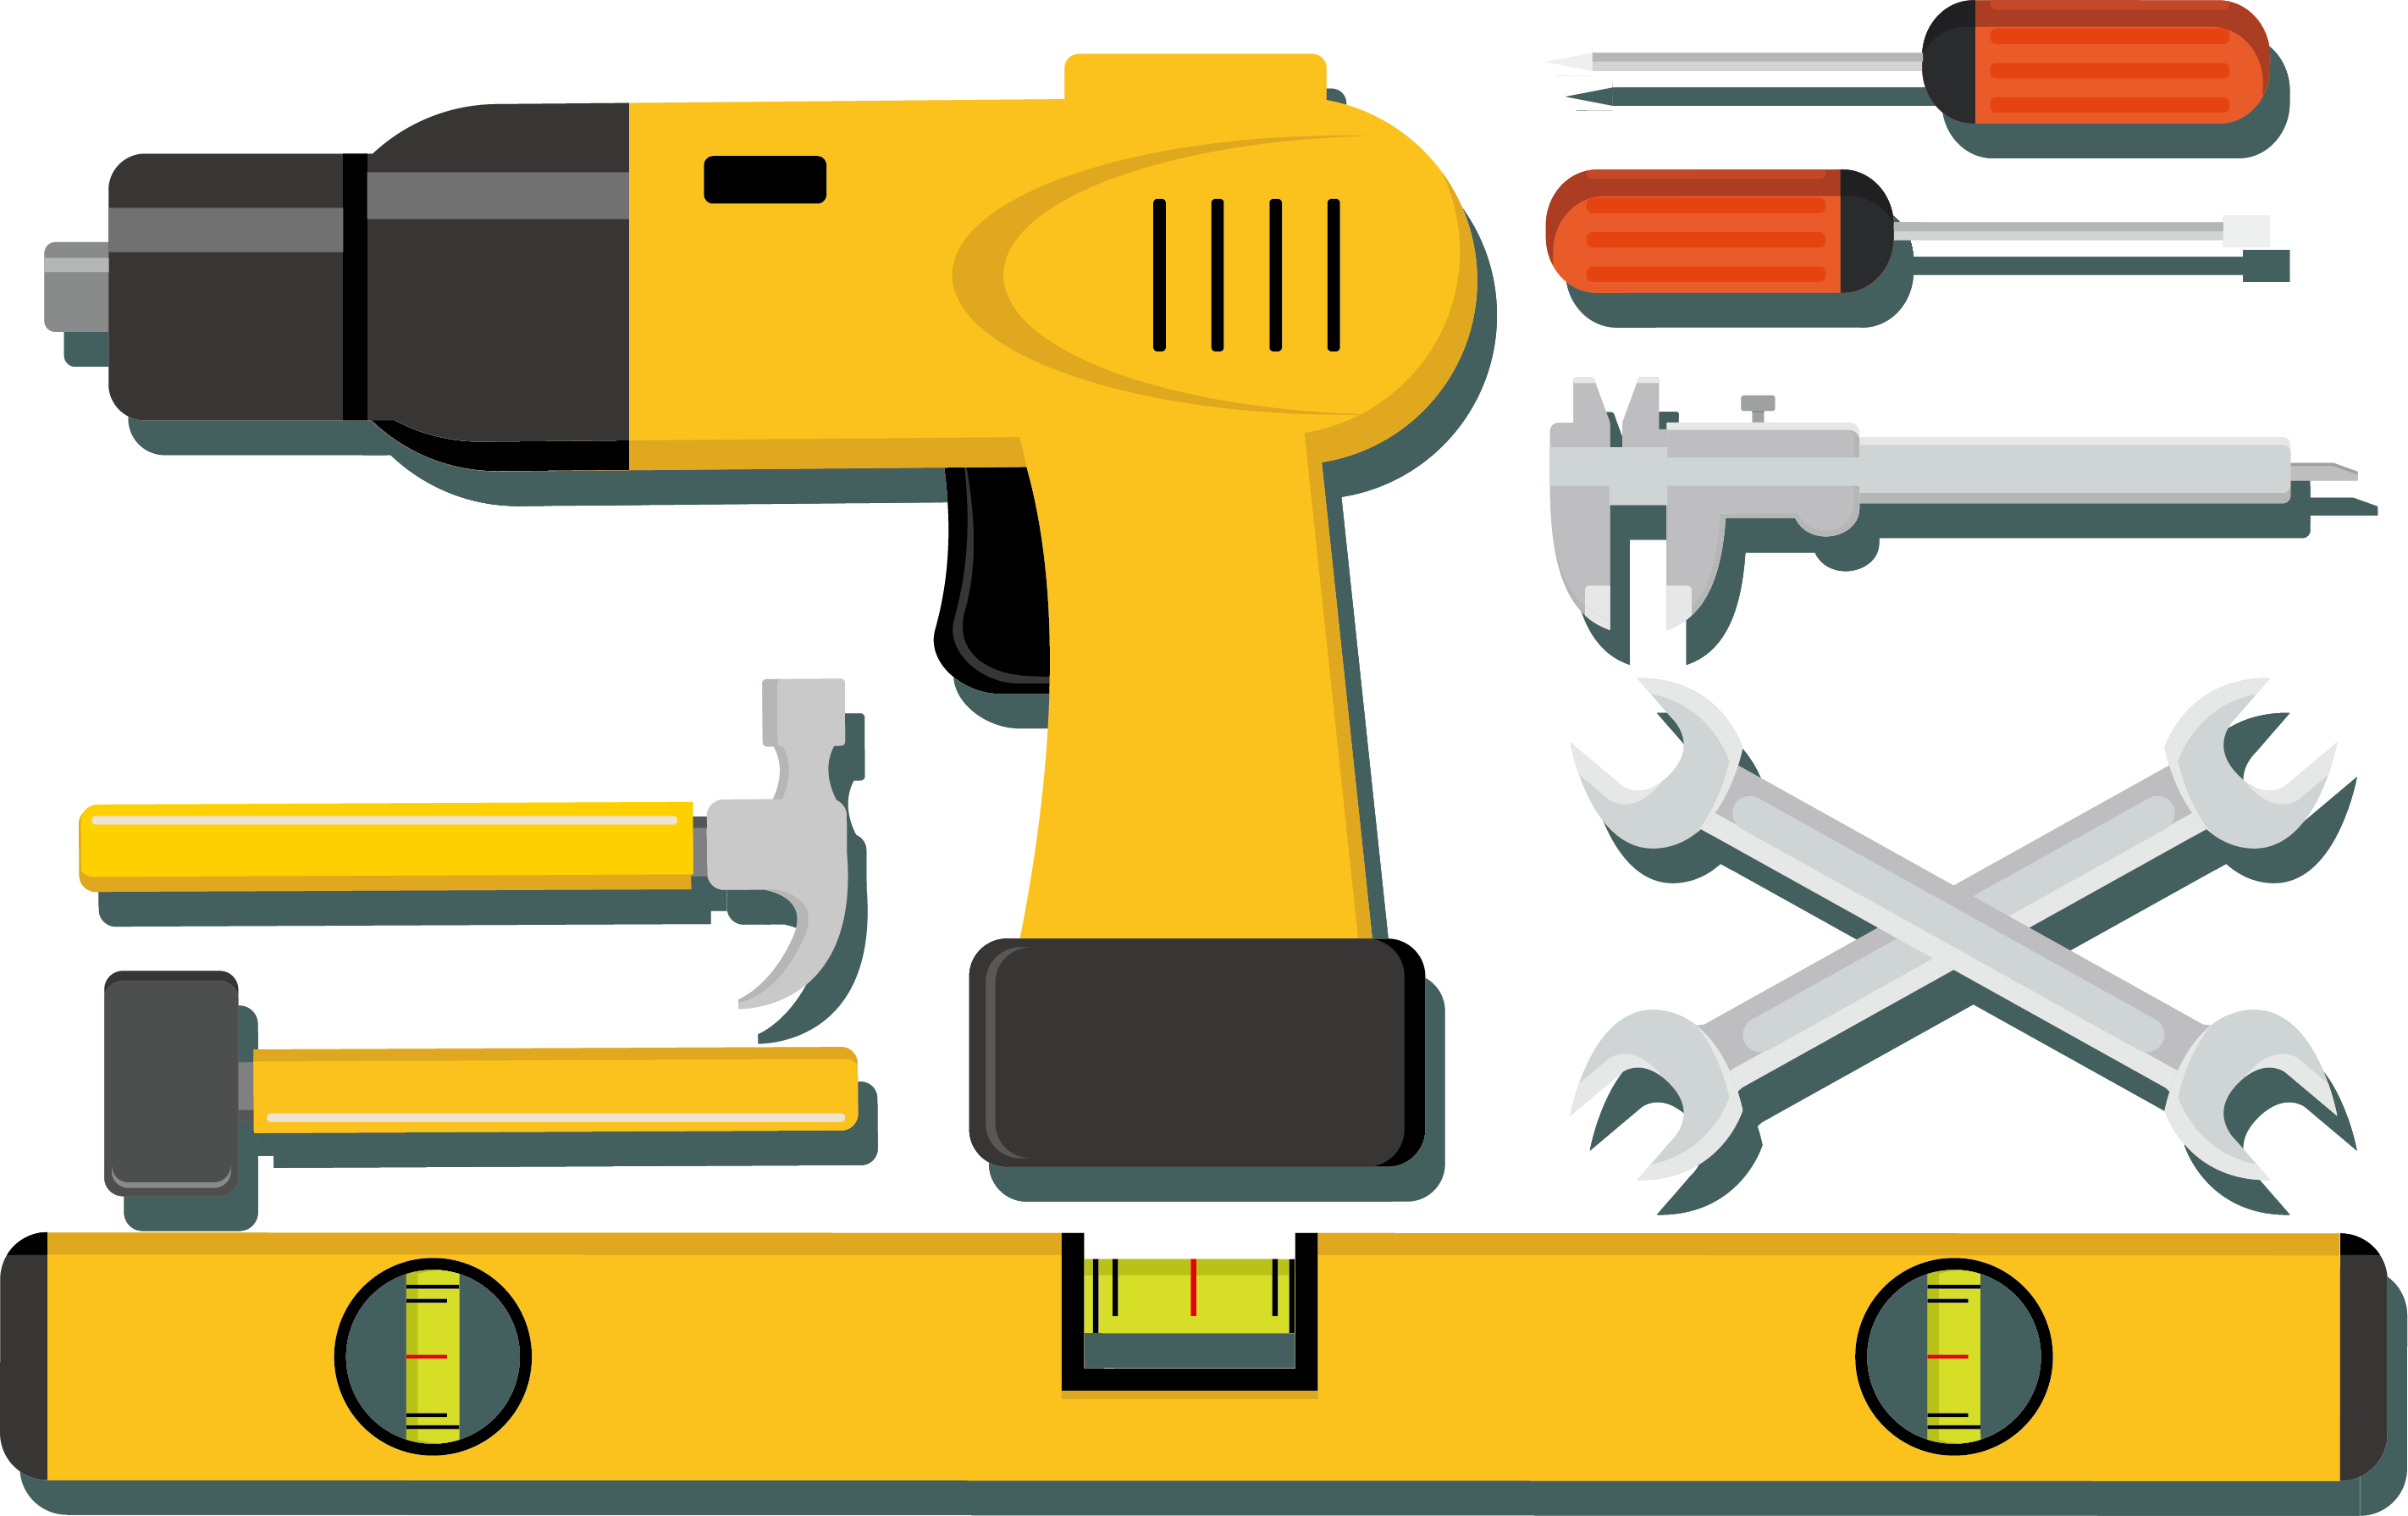 Nut clipart bolt tool. Icon building decoration and